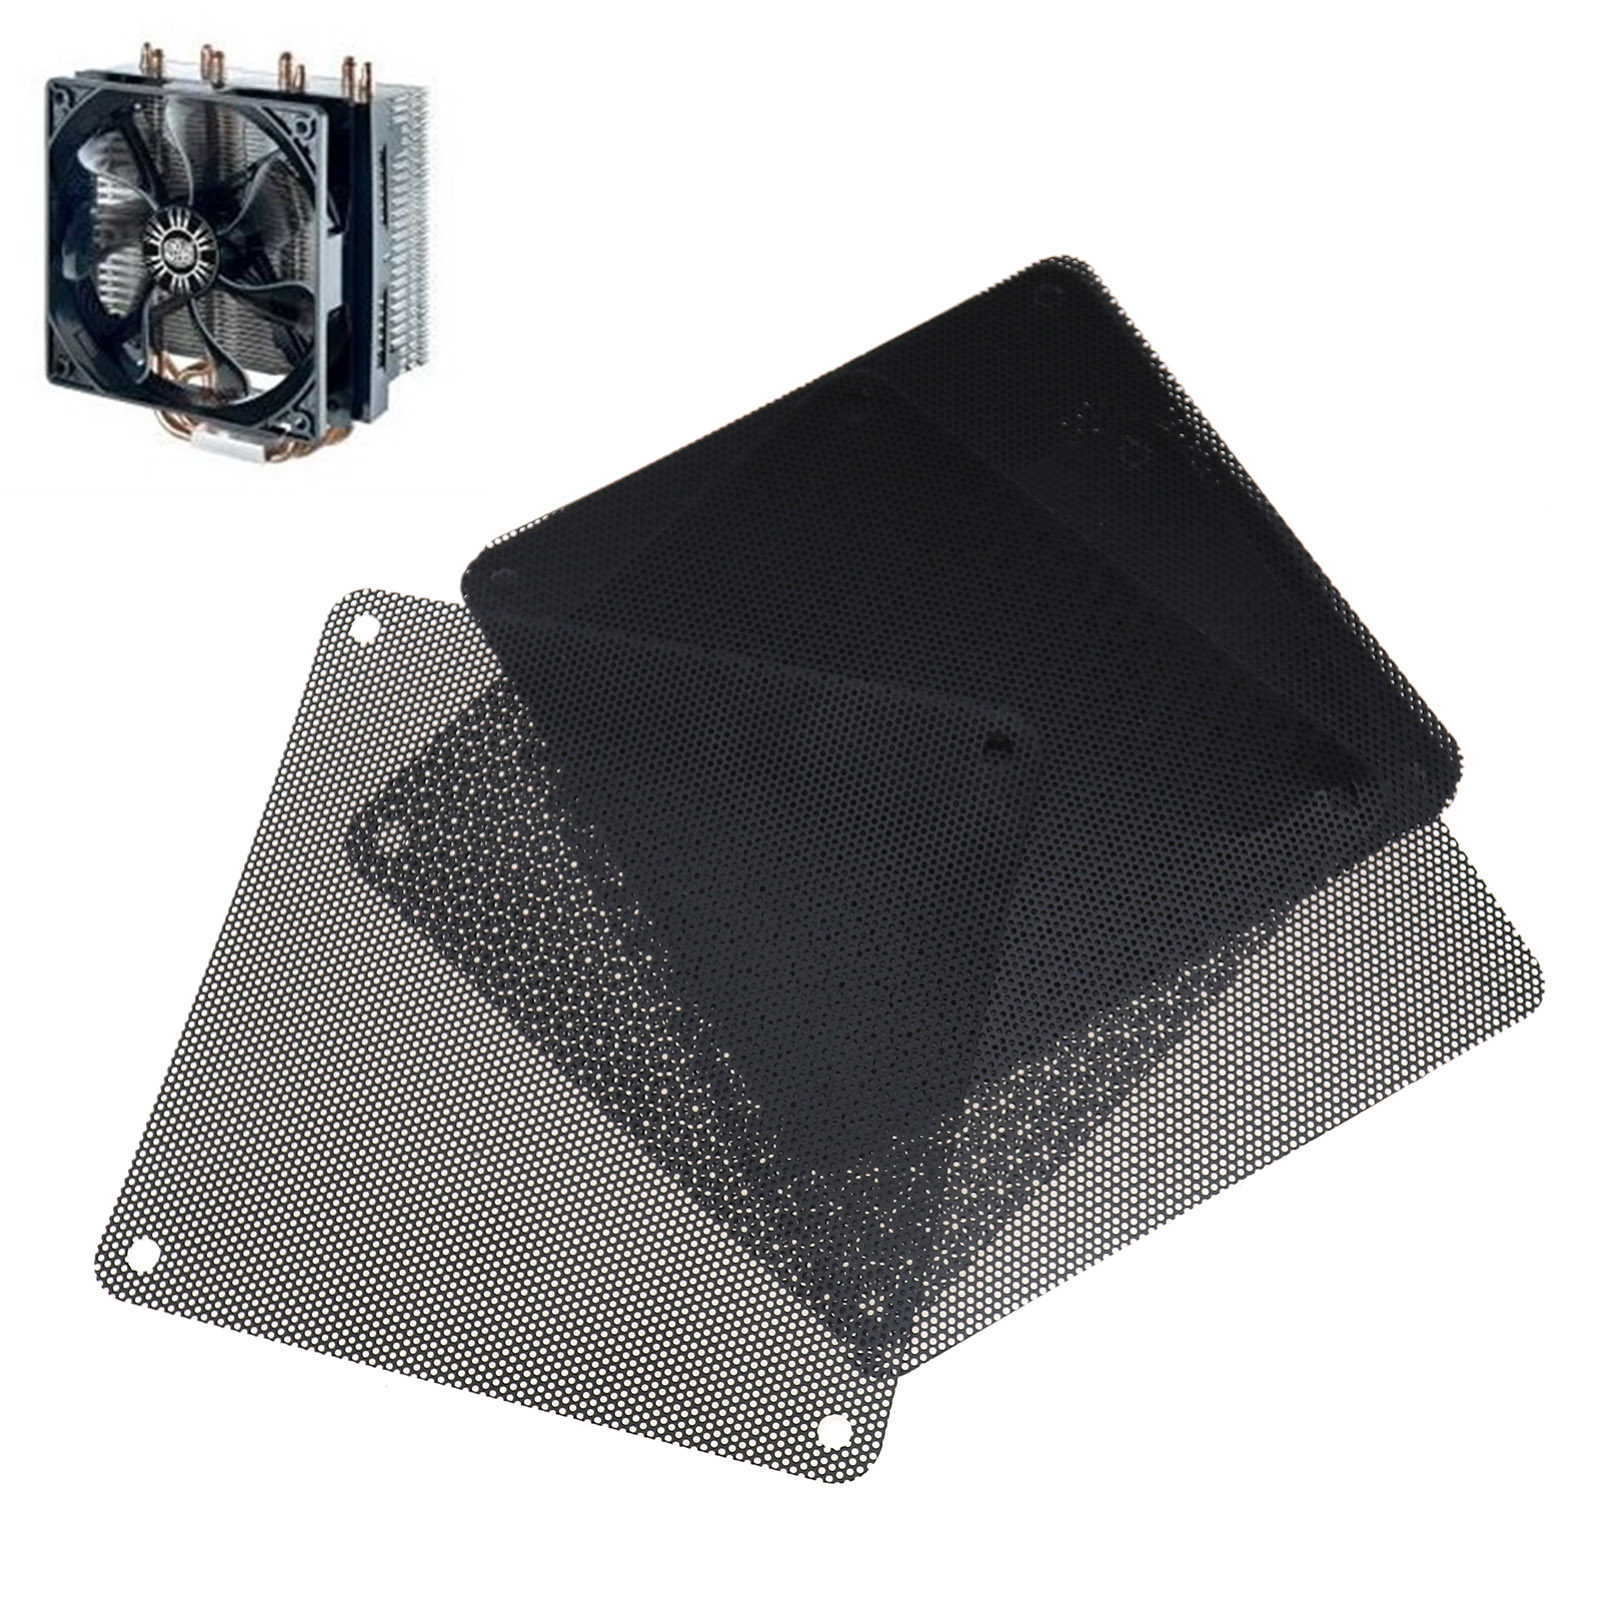 4pcs 60x60mm Computer Mesh Fan Cooler Dust Filter Dustproof Case Cover SU